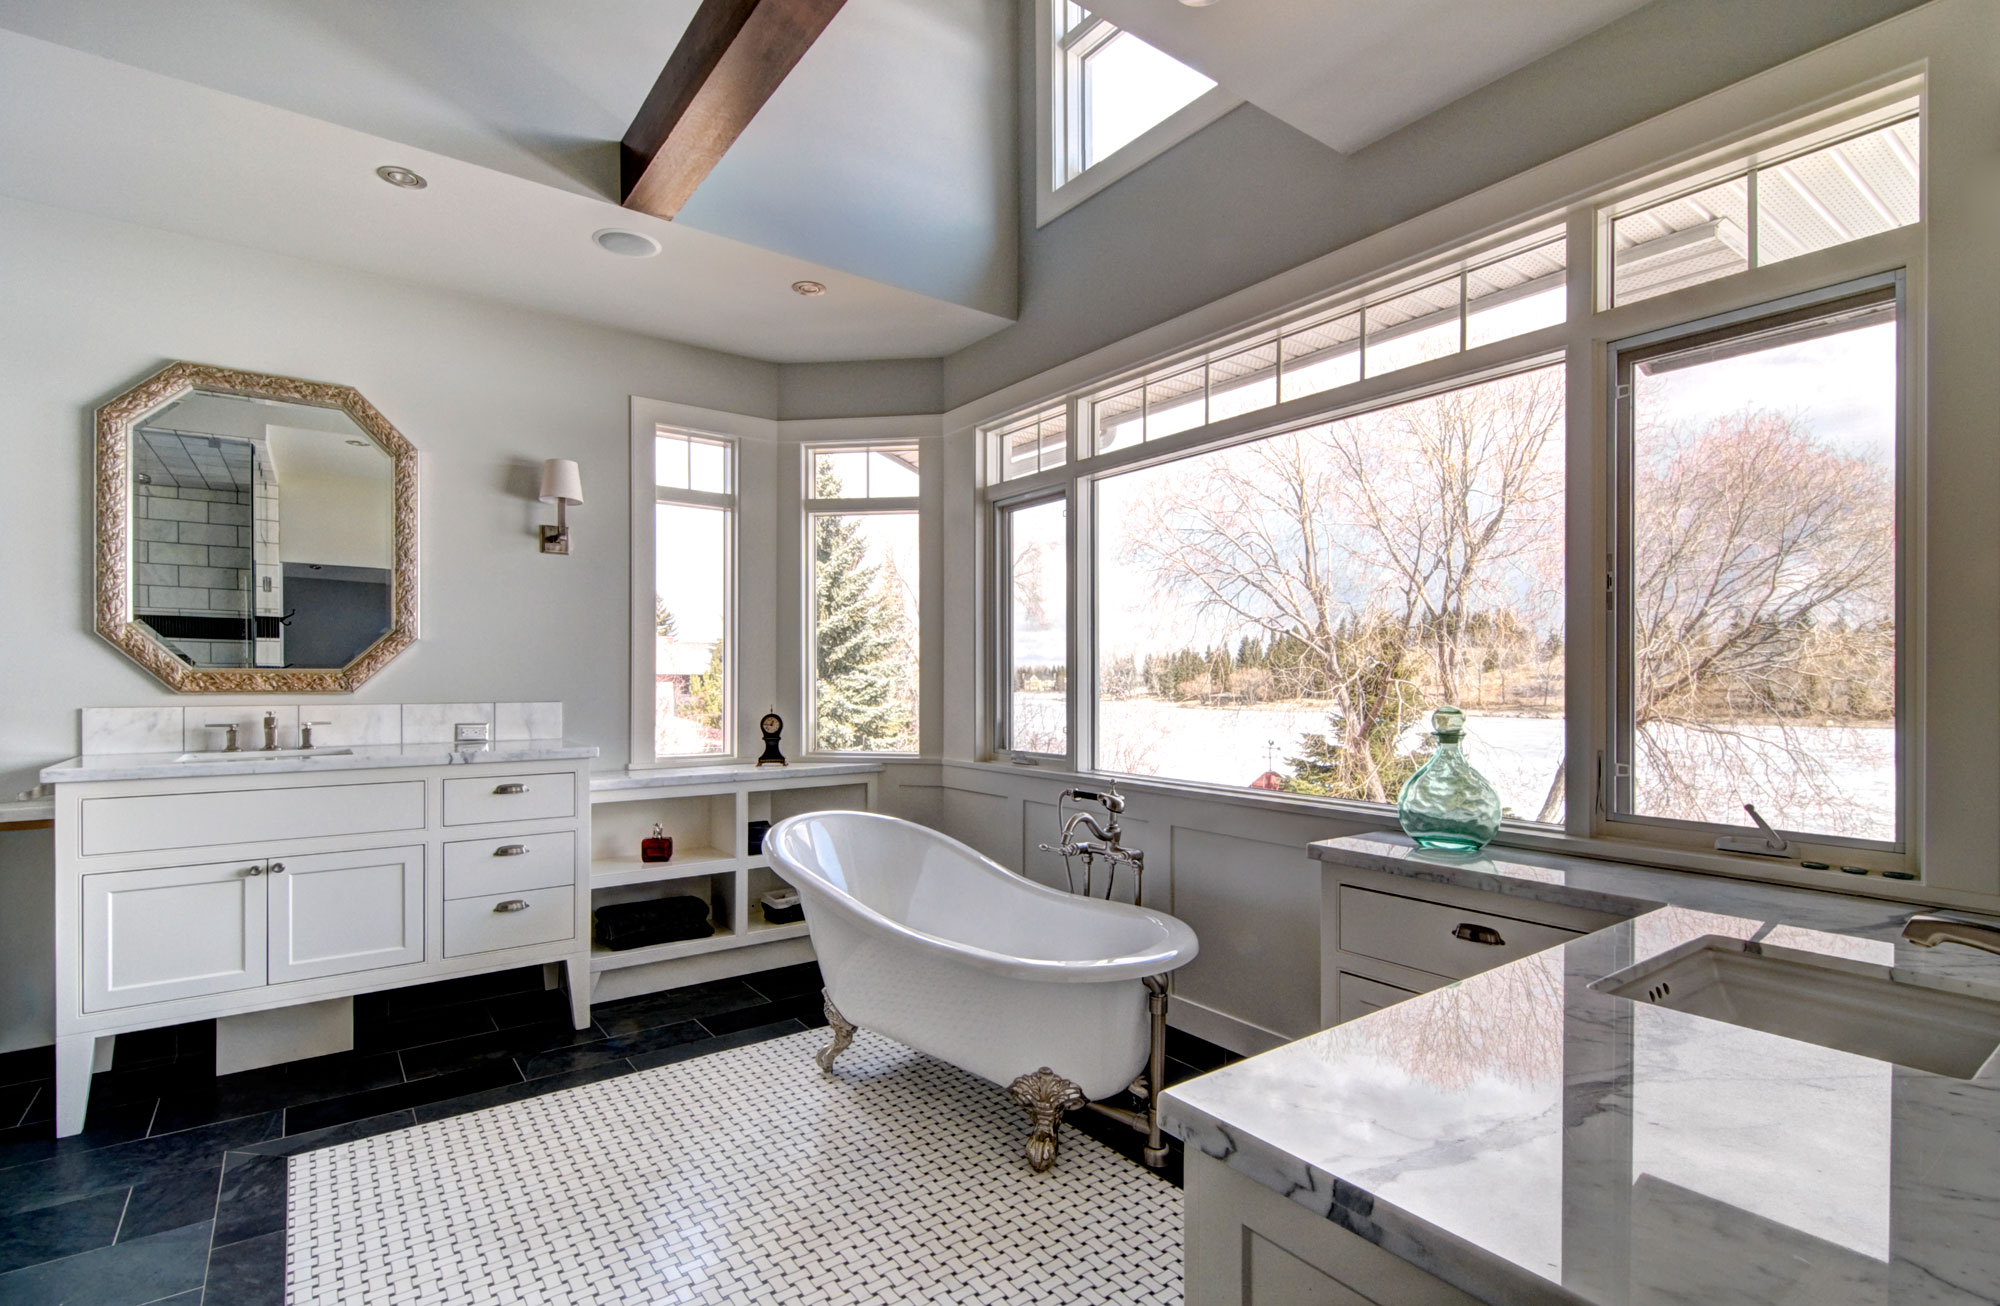 Lakeview Bathroom Remodel by Style Developments in Calgary Alberta